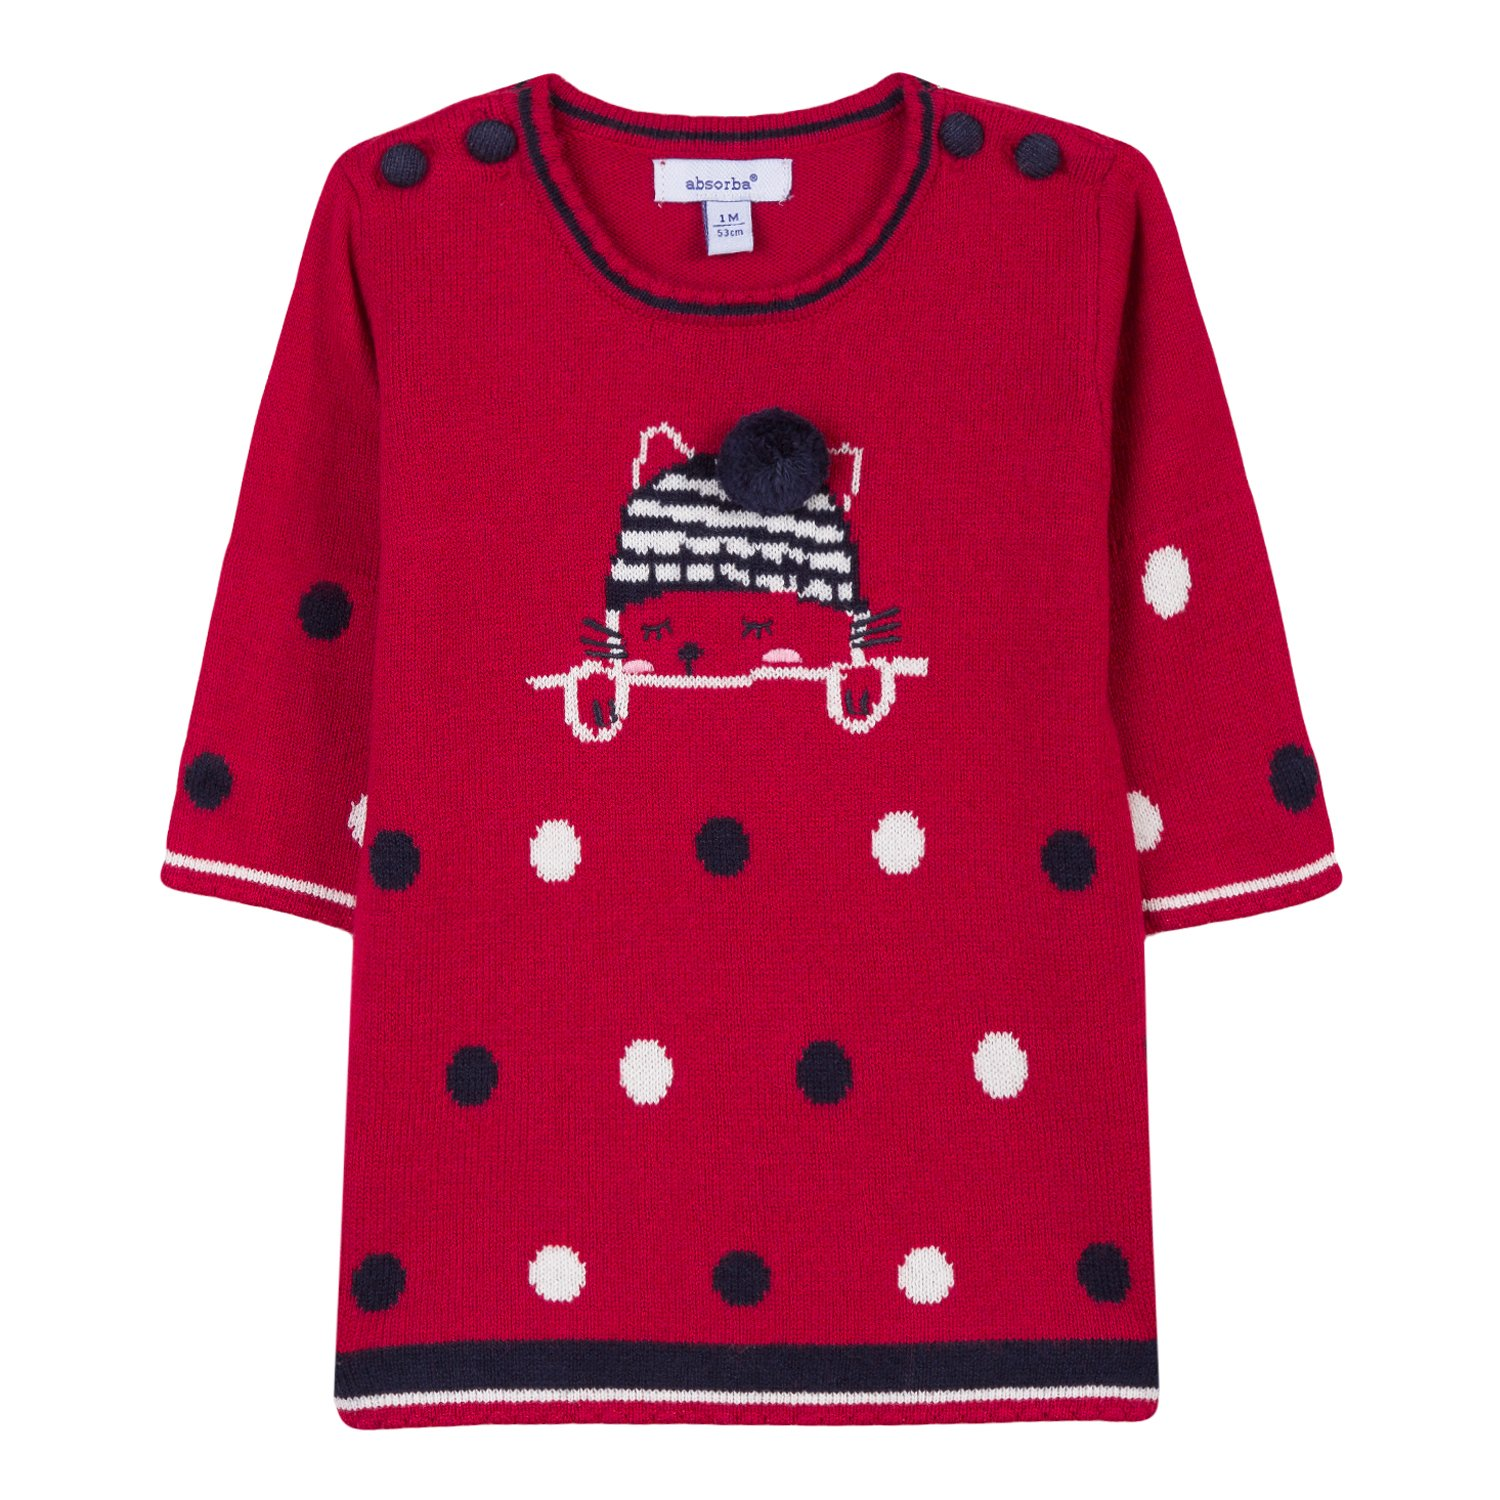 Absorba Boutique Robes Rouge, Vestido para Bebés 9M30002